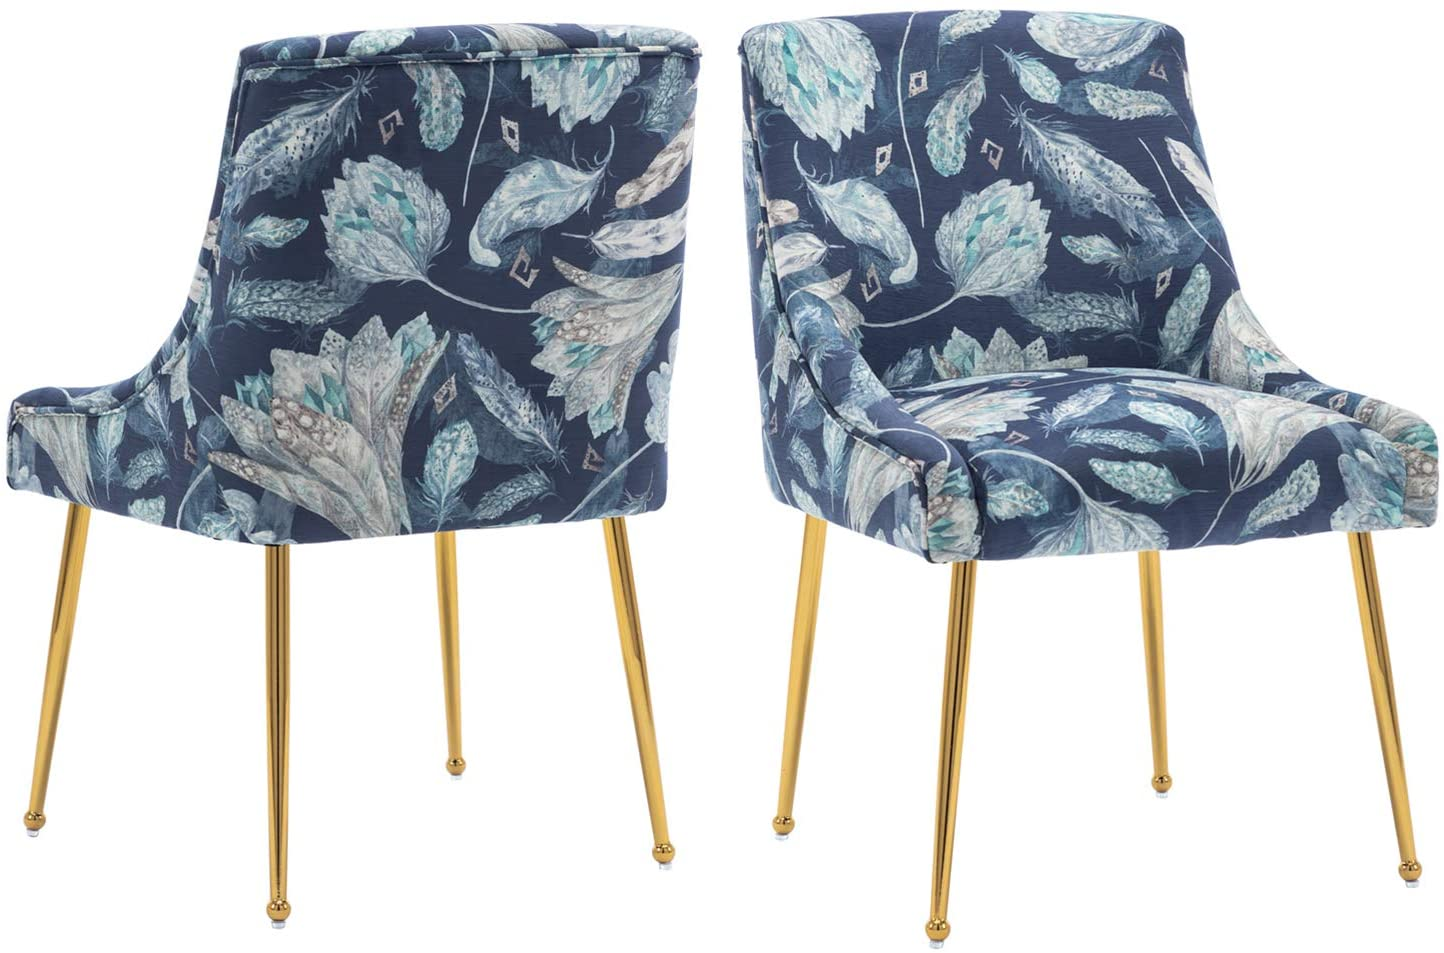 CIMOTA Modern Dining Chairs Set of 2, Tufted Upholstered Velvet Chair Comfy Accent Chair with Brass Metal Legs for Living Room,Vanity,Bedroom (Retro Blue Flower)